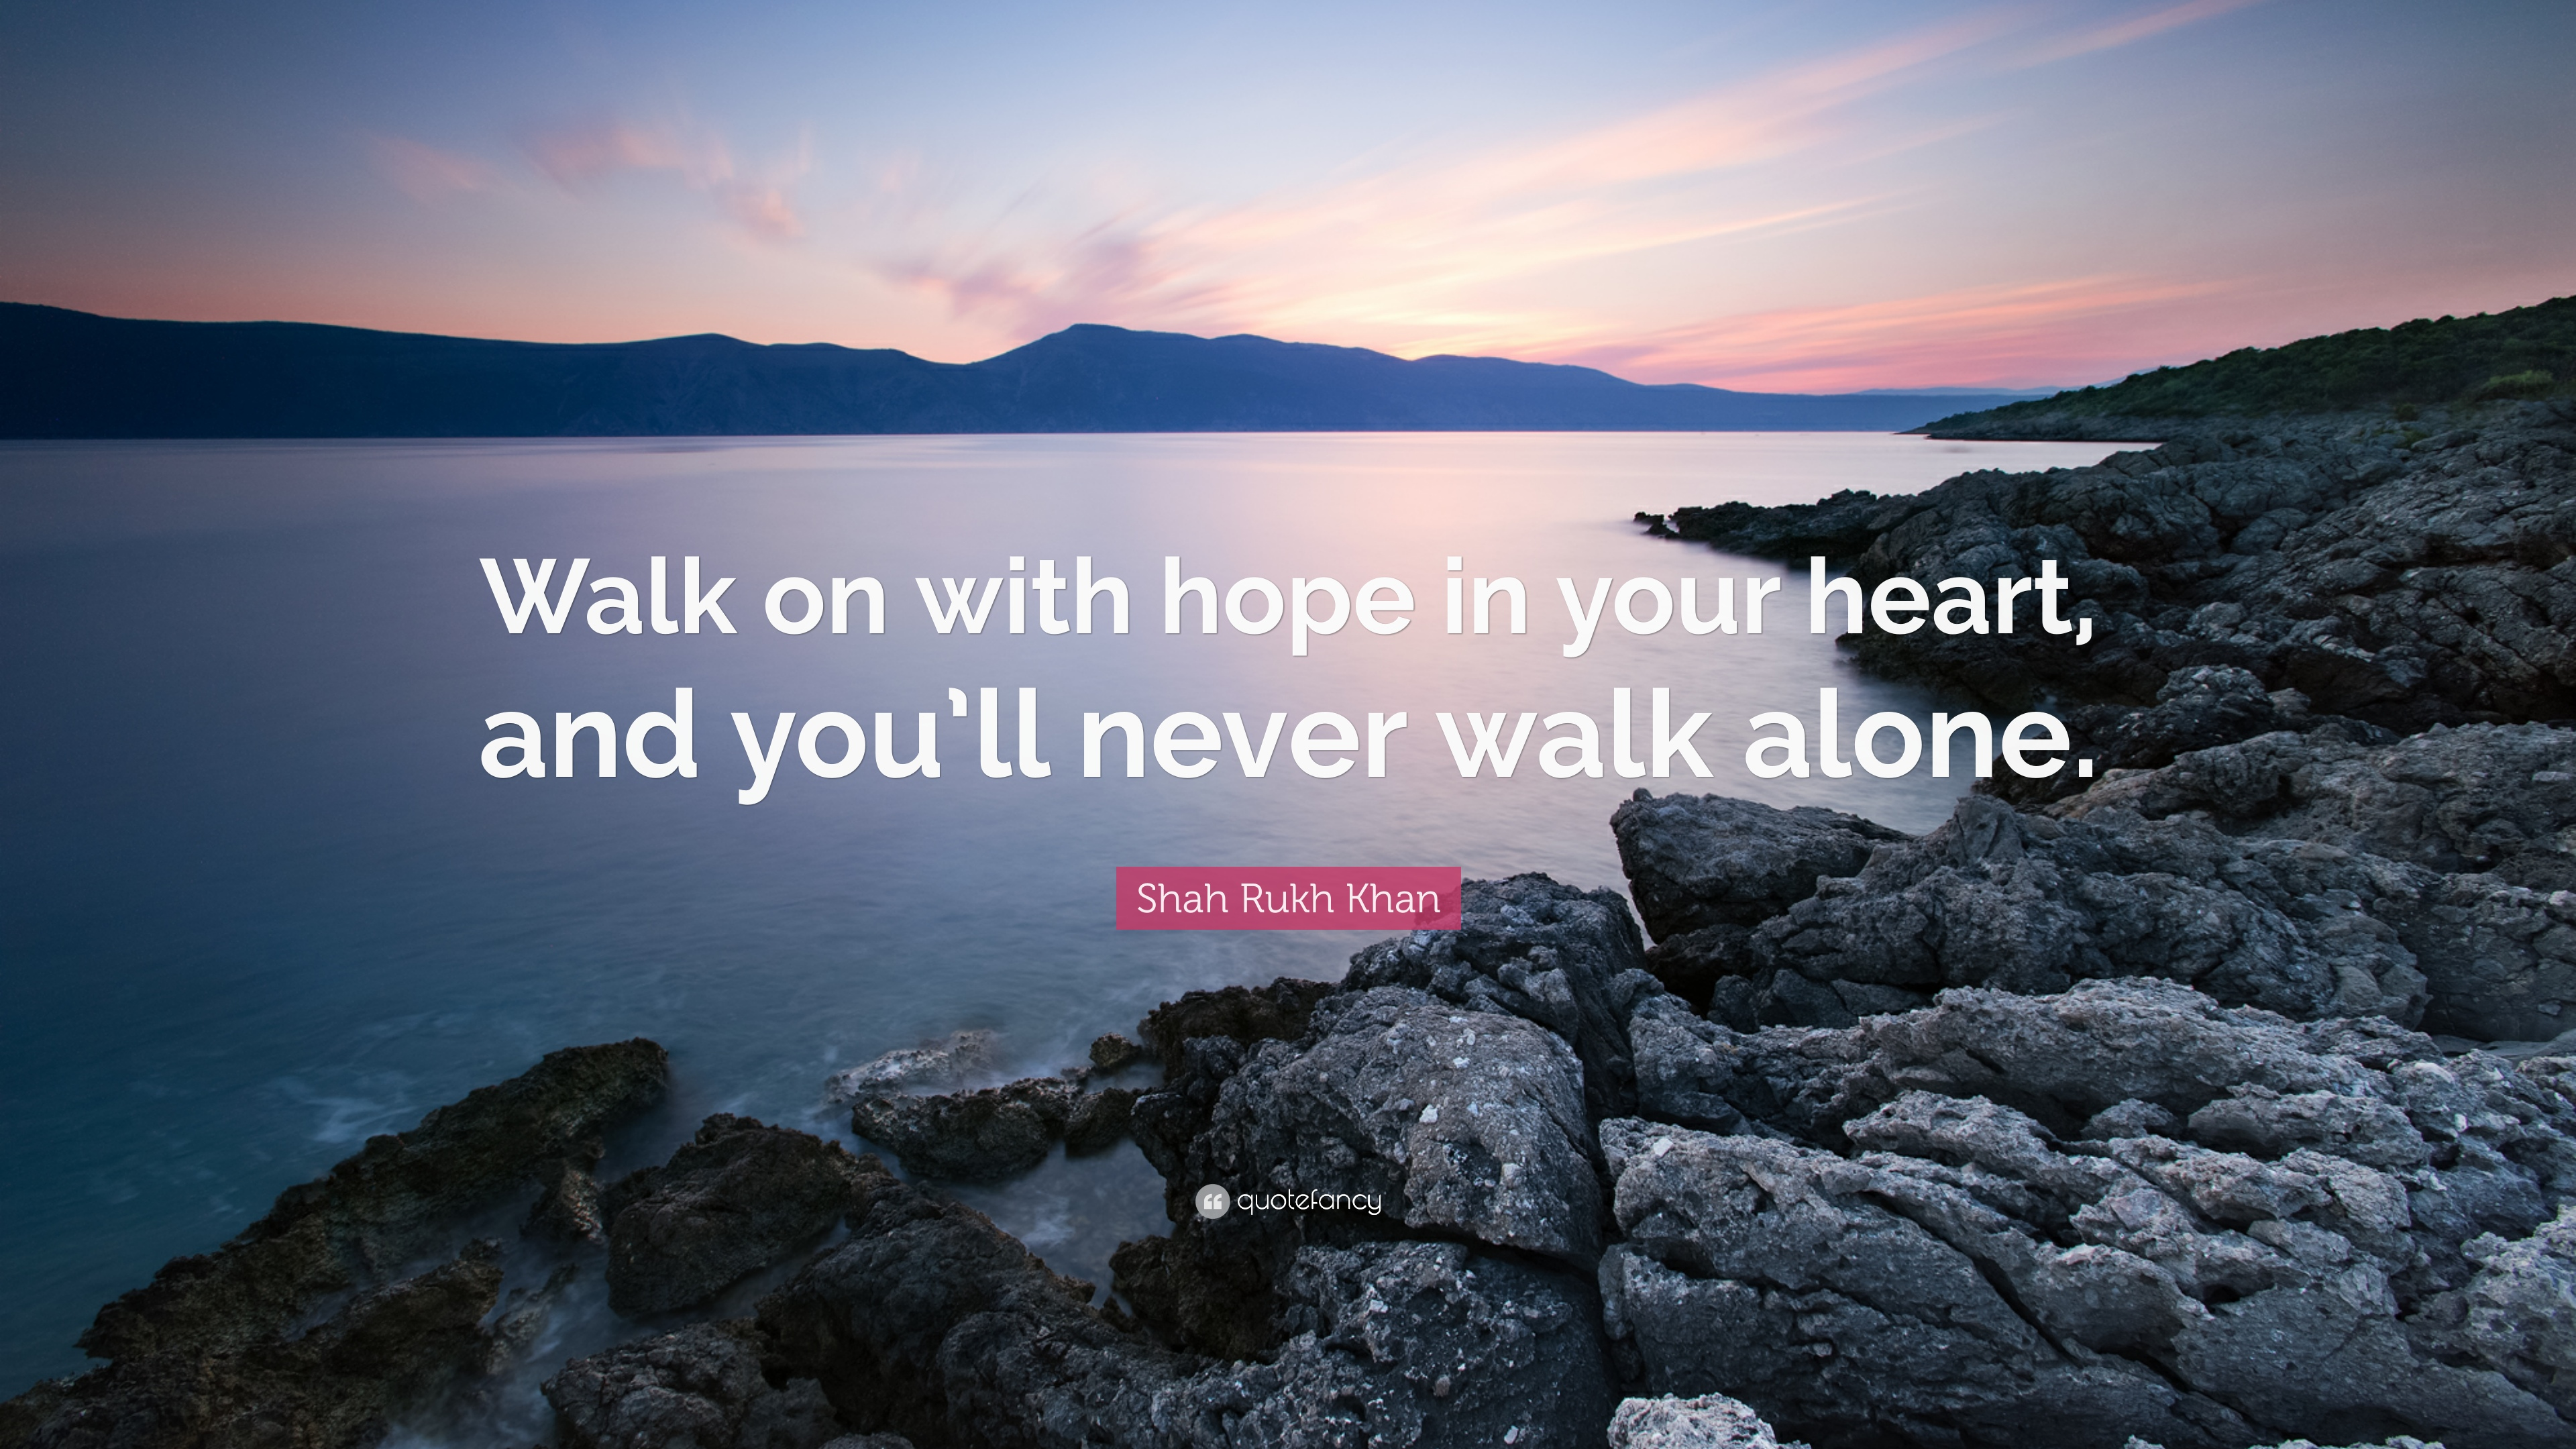 Shah Rukh Khan Quote Walk On With Hope In Your Heart And You Ll